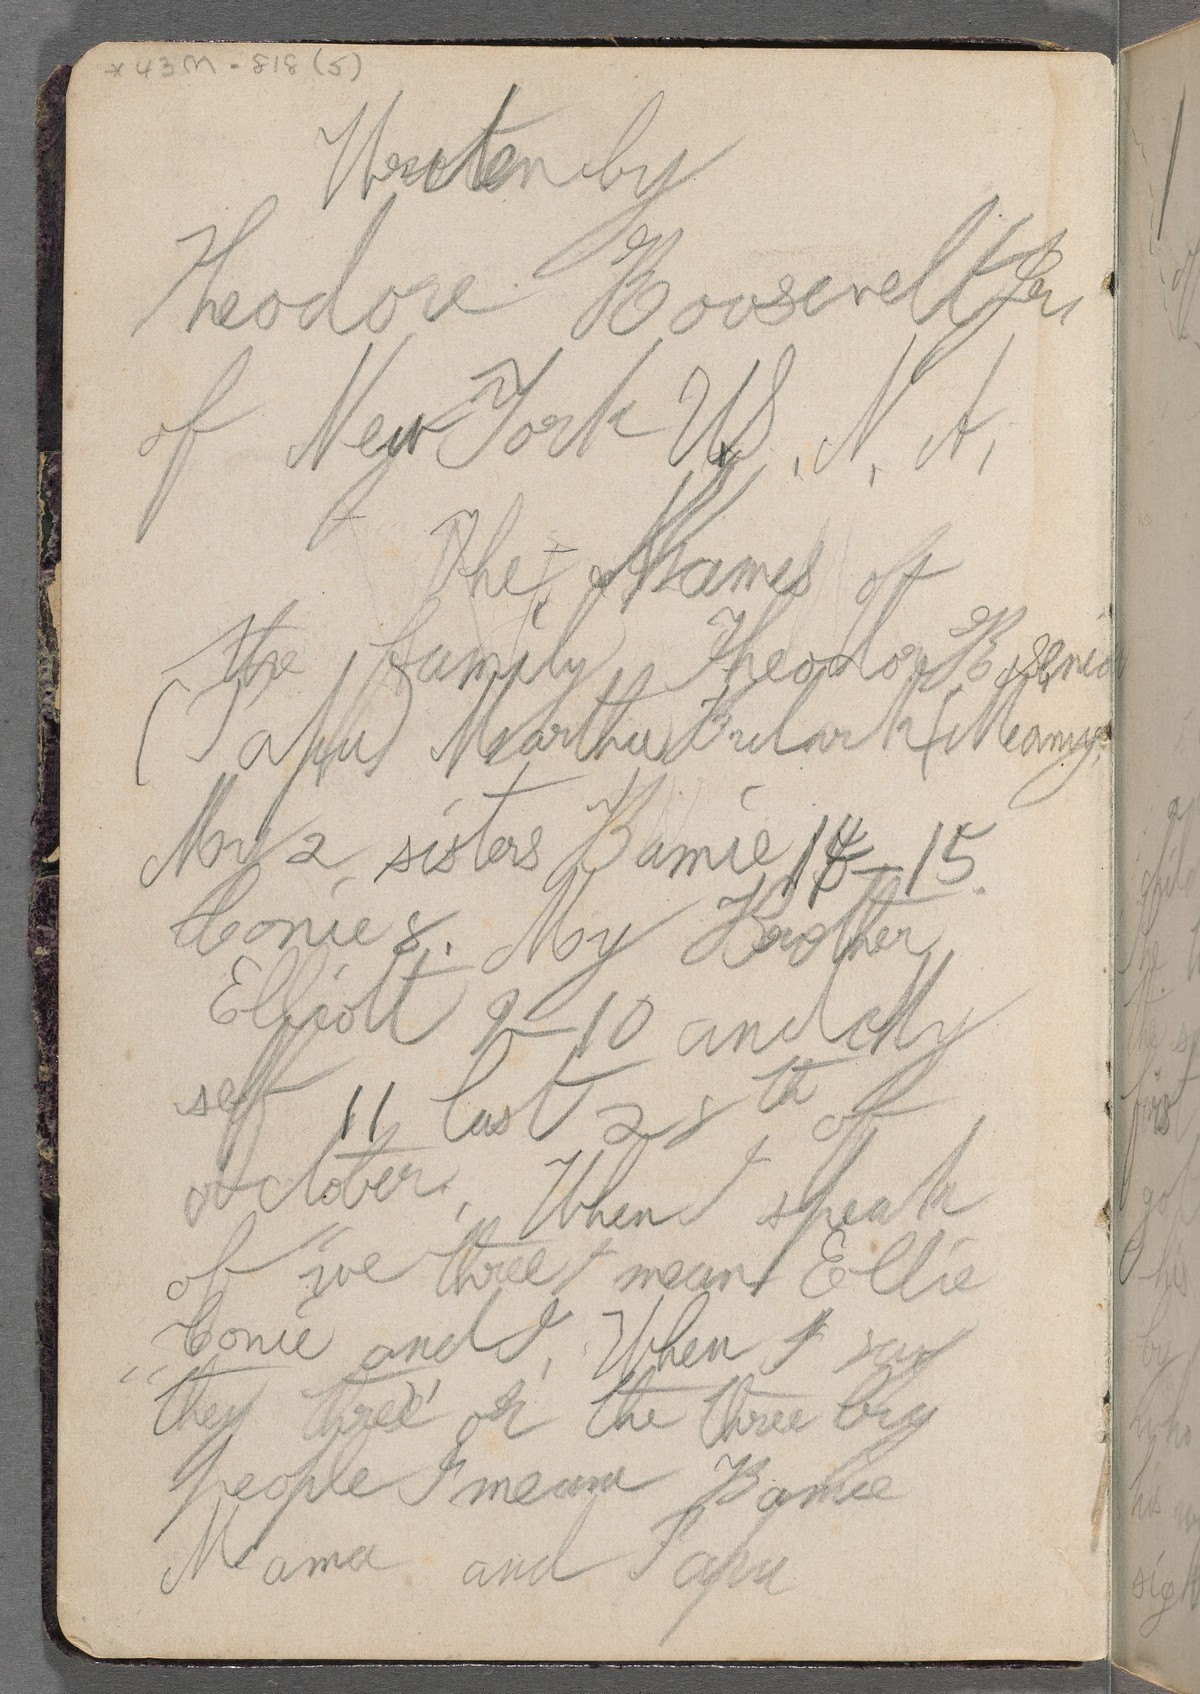 Travel diary kept while on a trip to Europe with his parents, age 11, 1869. Theodore Roosevelt Collection, Houghton Library, Harvard University, MS Am 1454.55 (5)